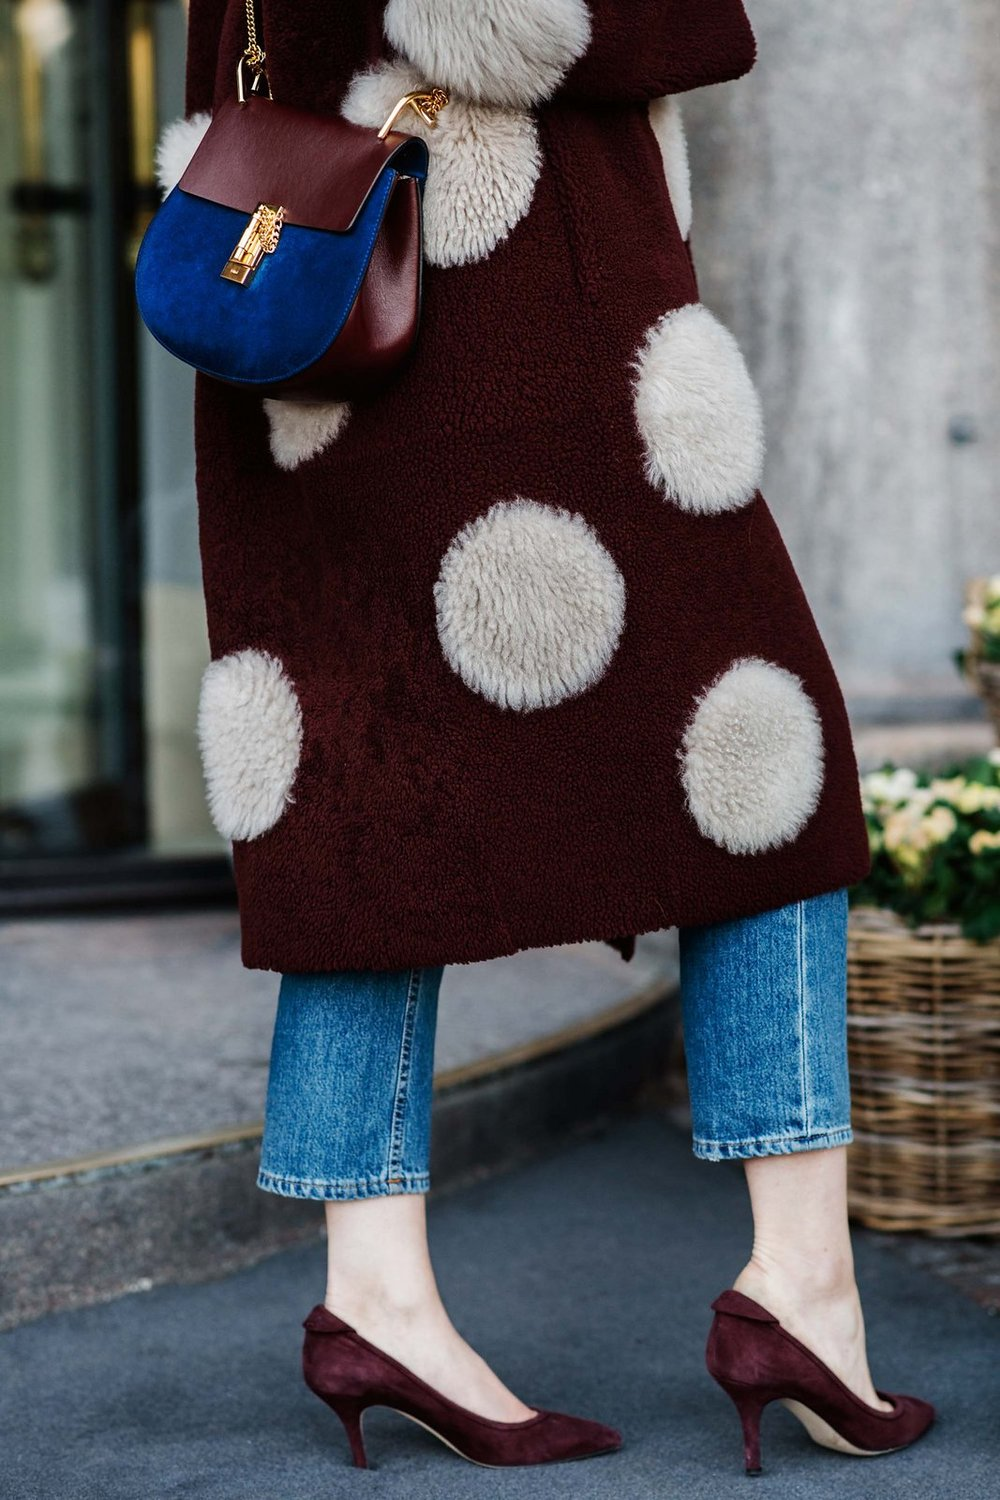 Dots and style for all